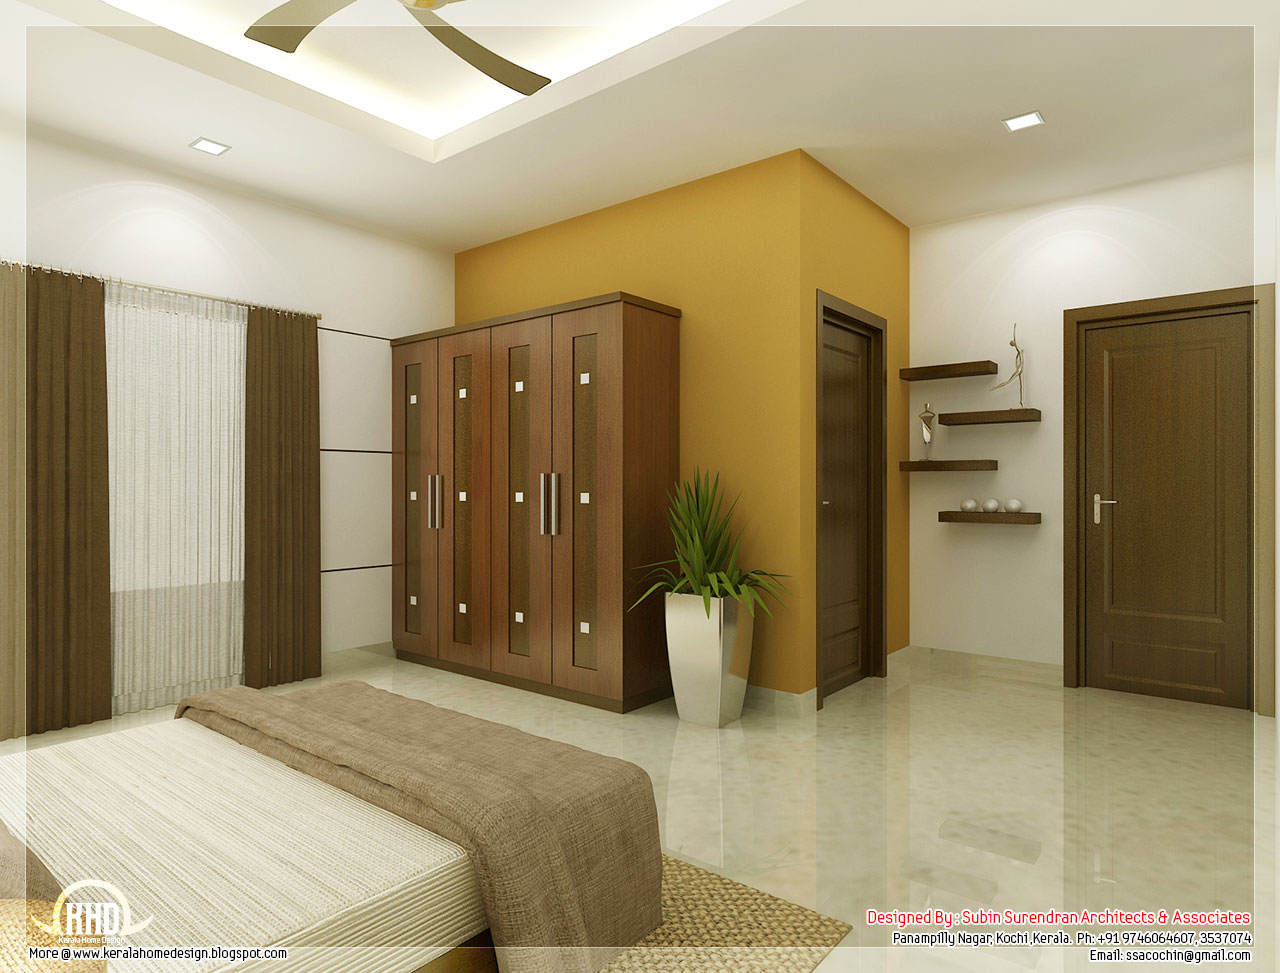 Beautiful bedroom interior designs kerala home design for Home interior design photo gallery